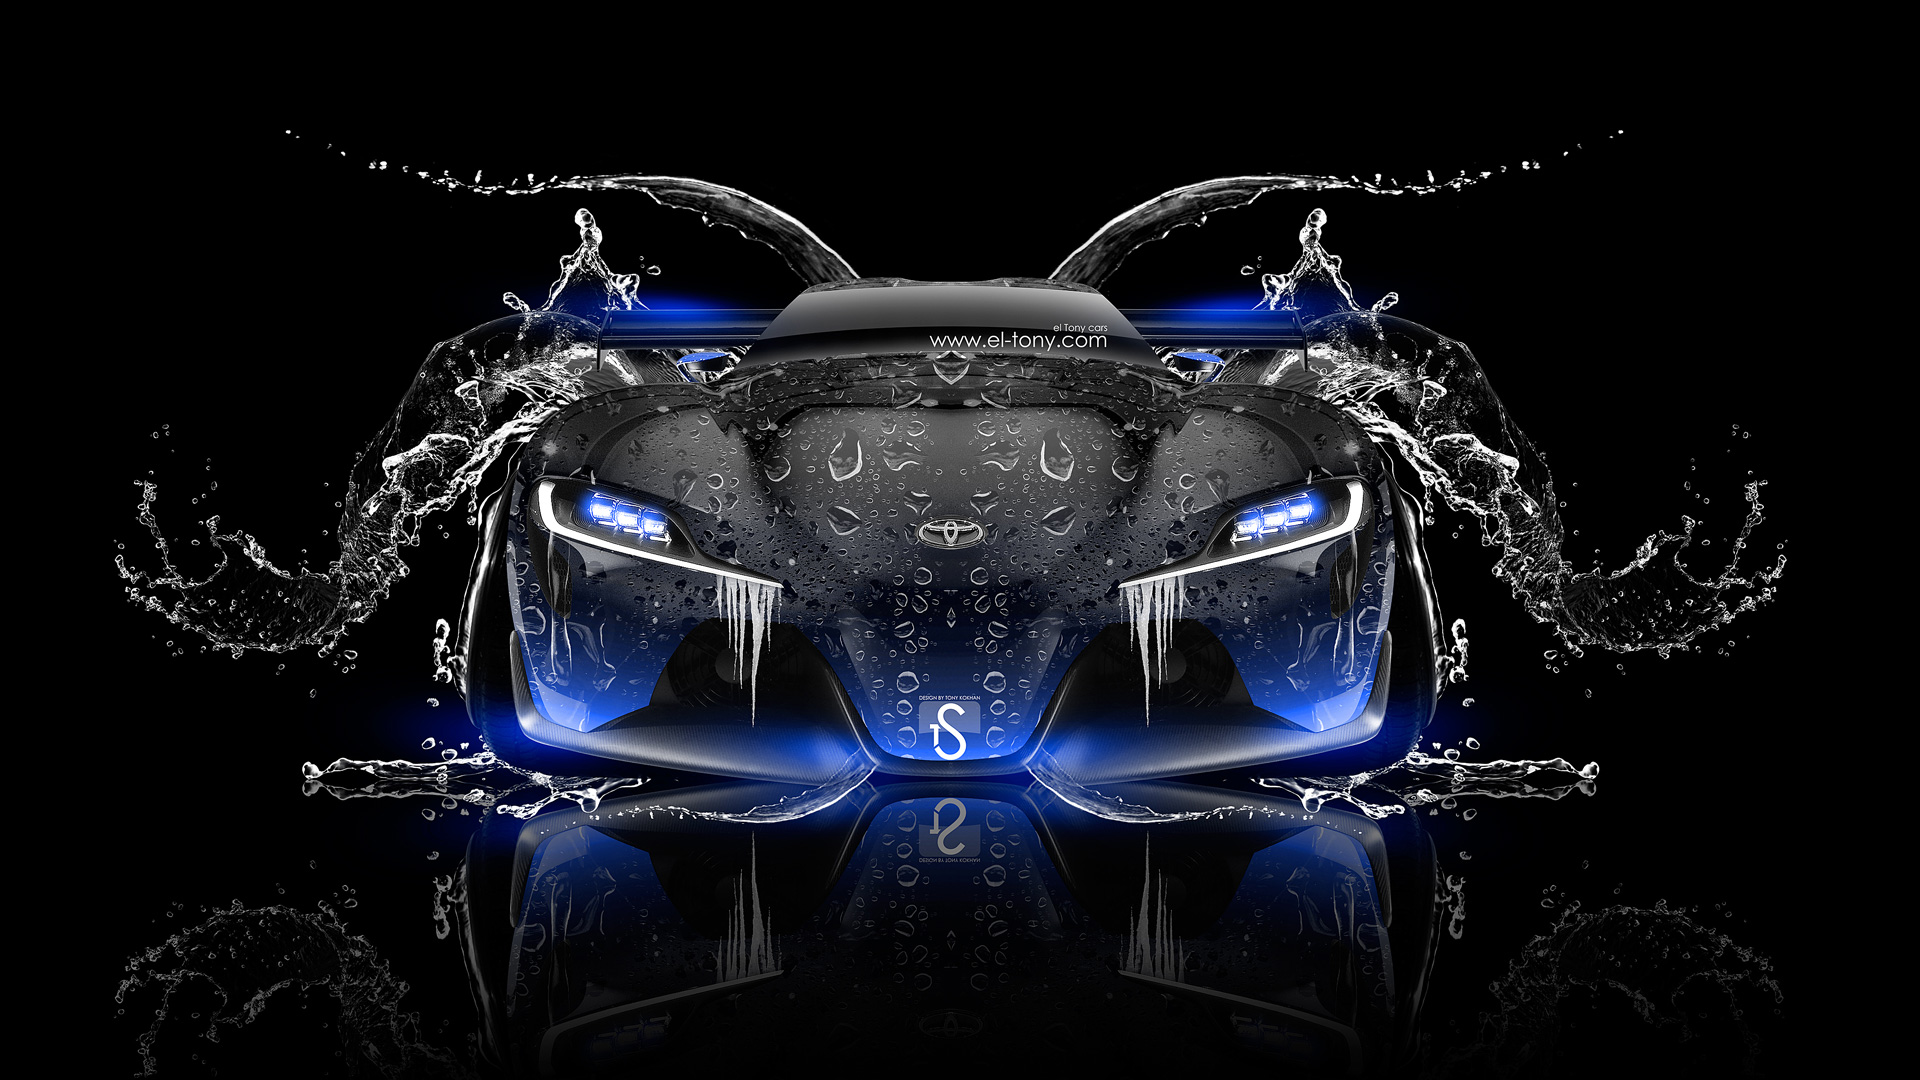 Desktop Corvett Car Wallpaper Toyota Ft 1 Cool Hi Res Wallpapers Supramkv 2020